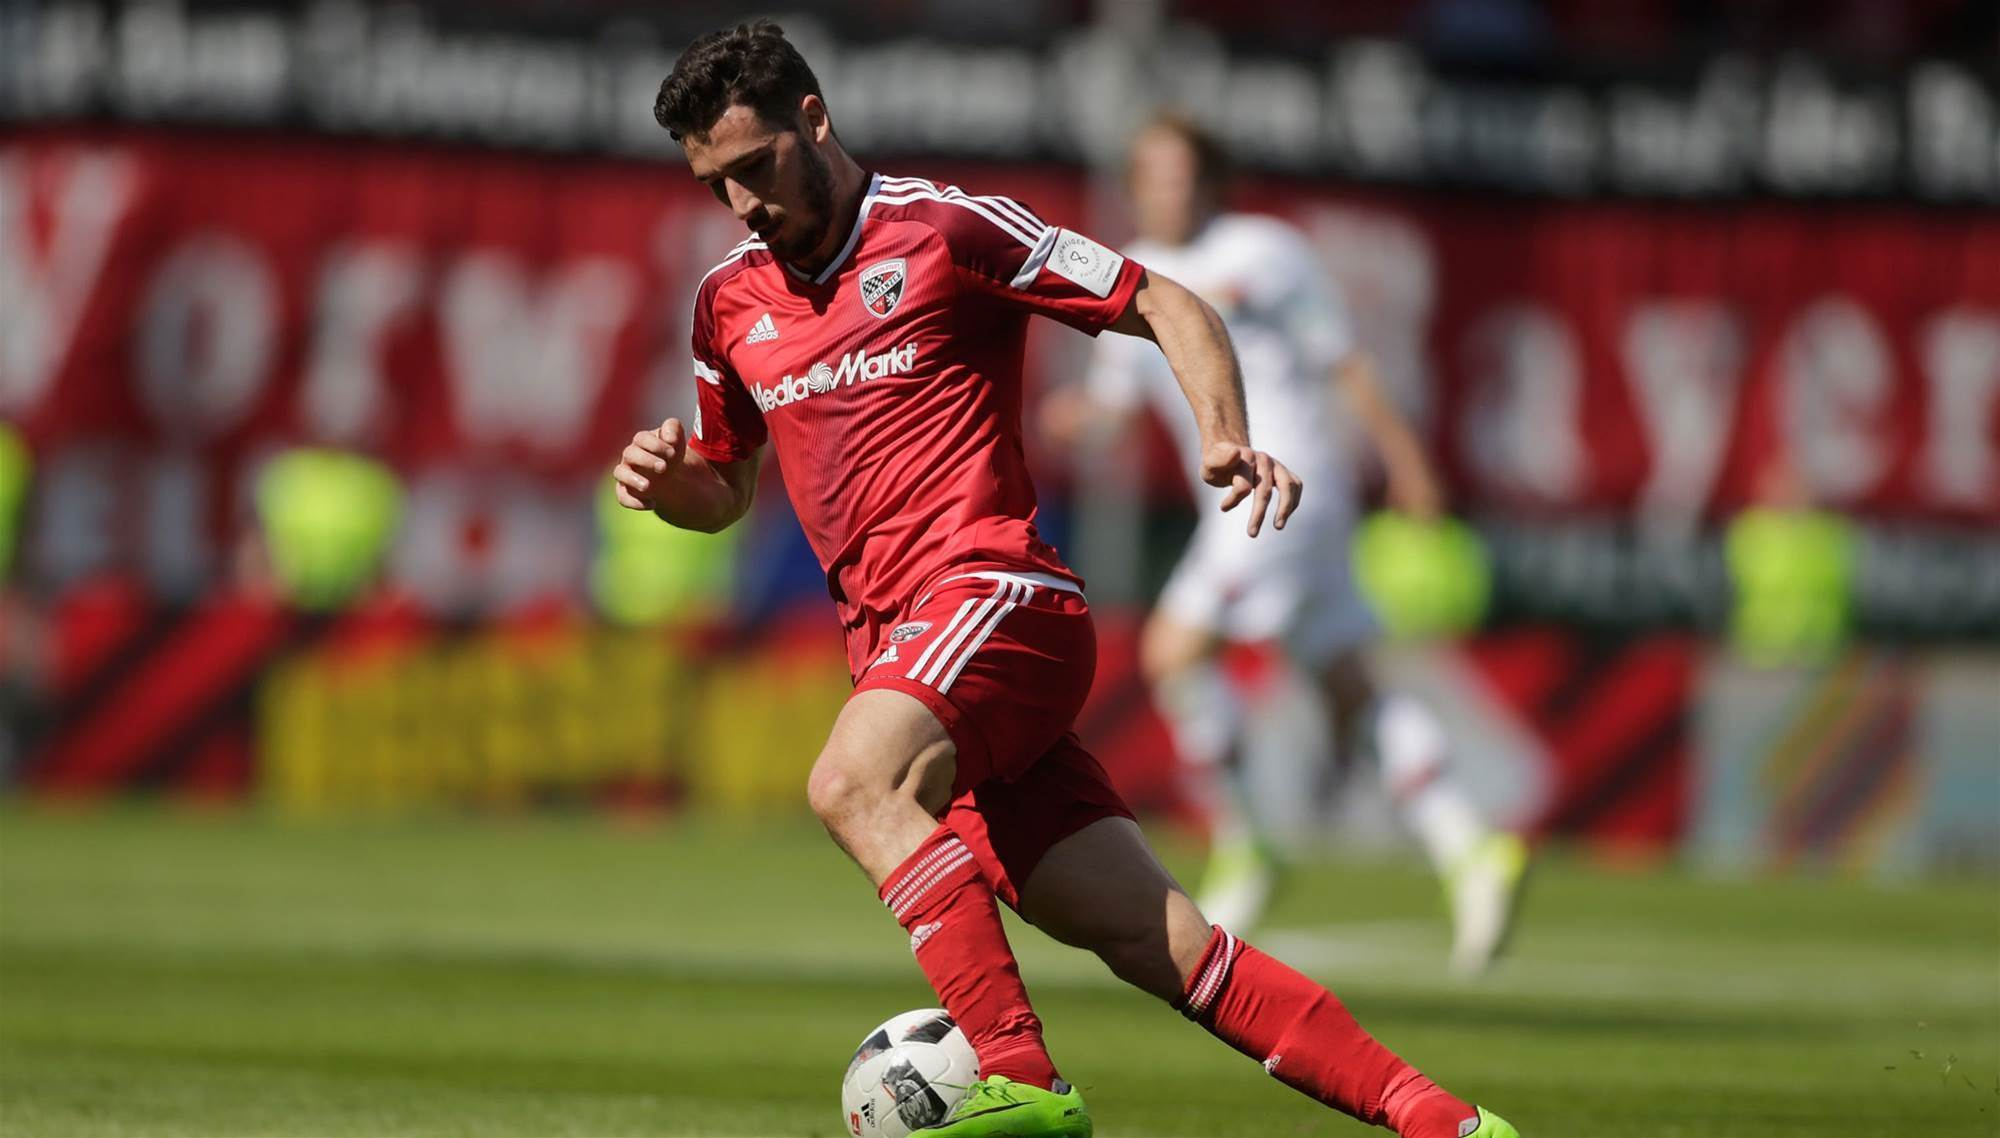 Heartbreak as Leckie's Ingolstadt relegated